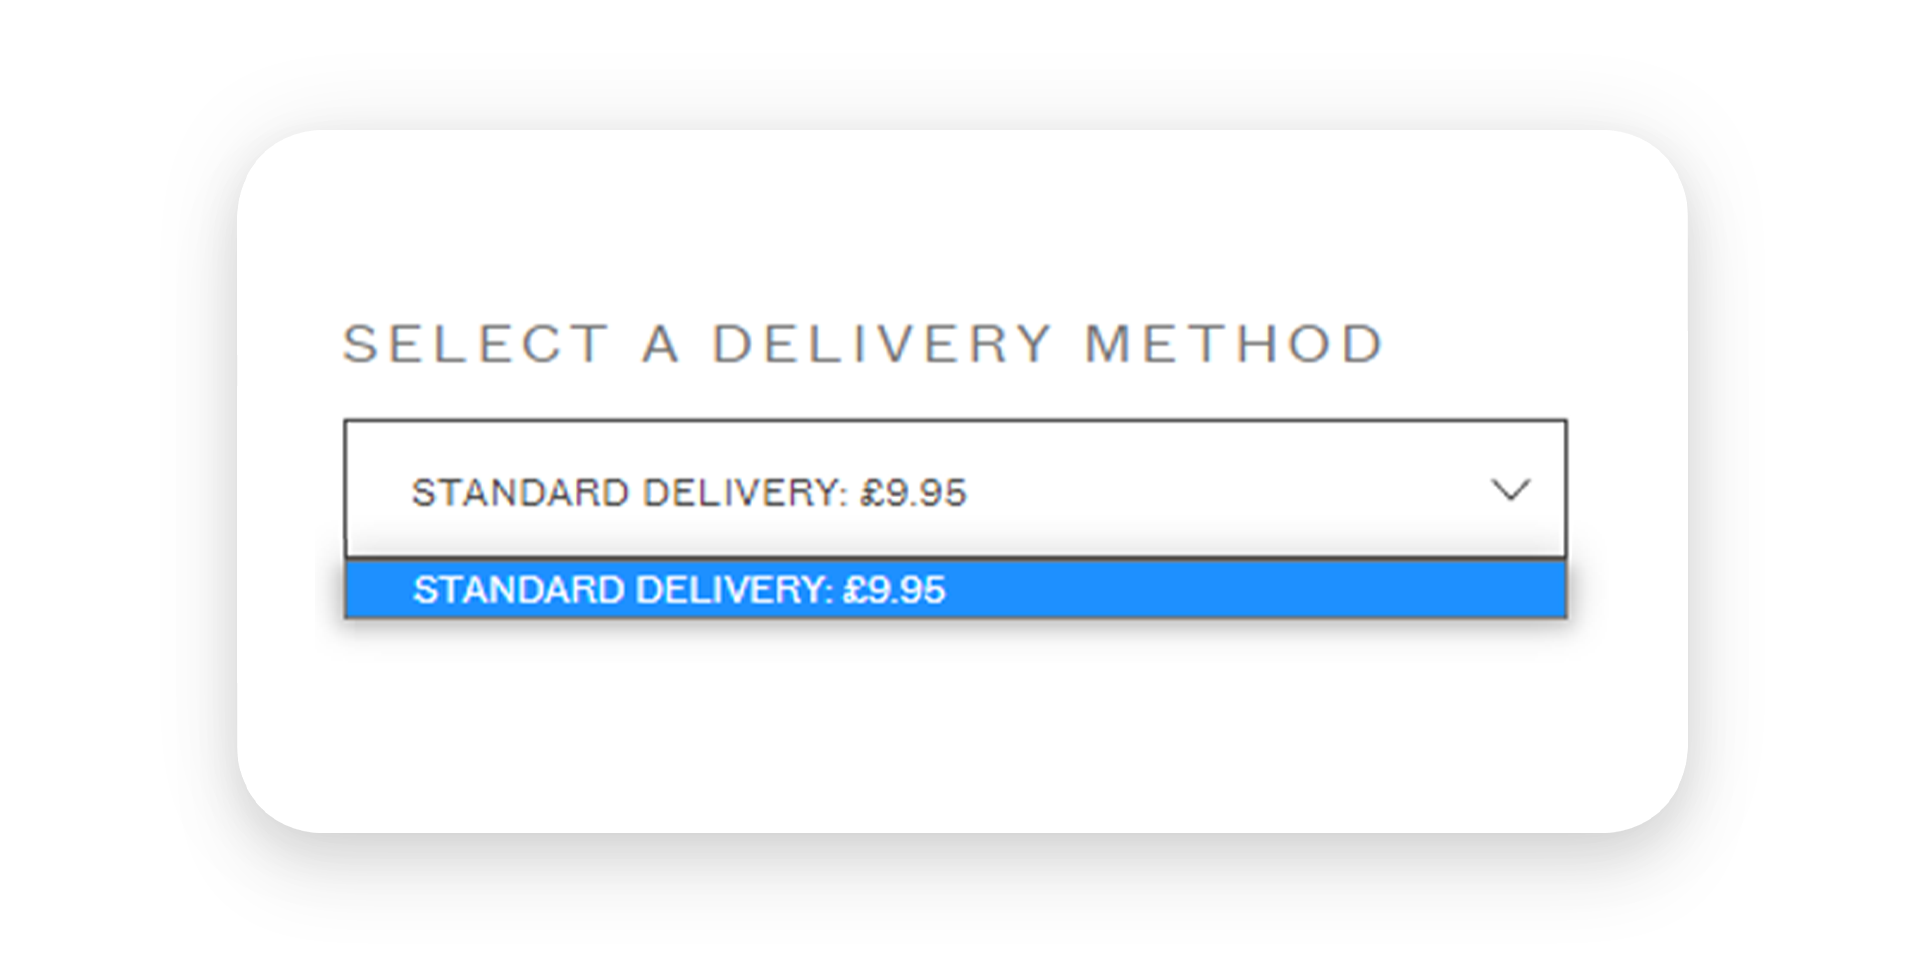 Selecting a delivery method